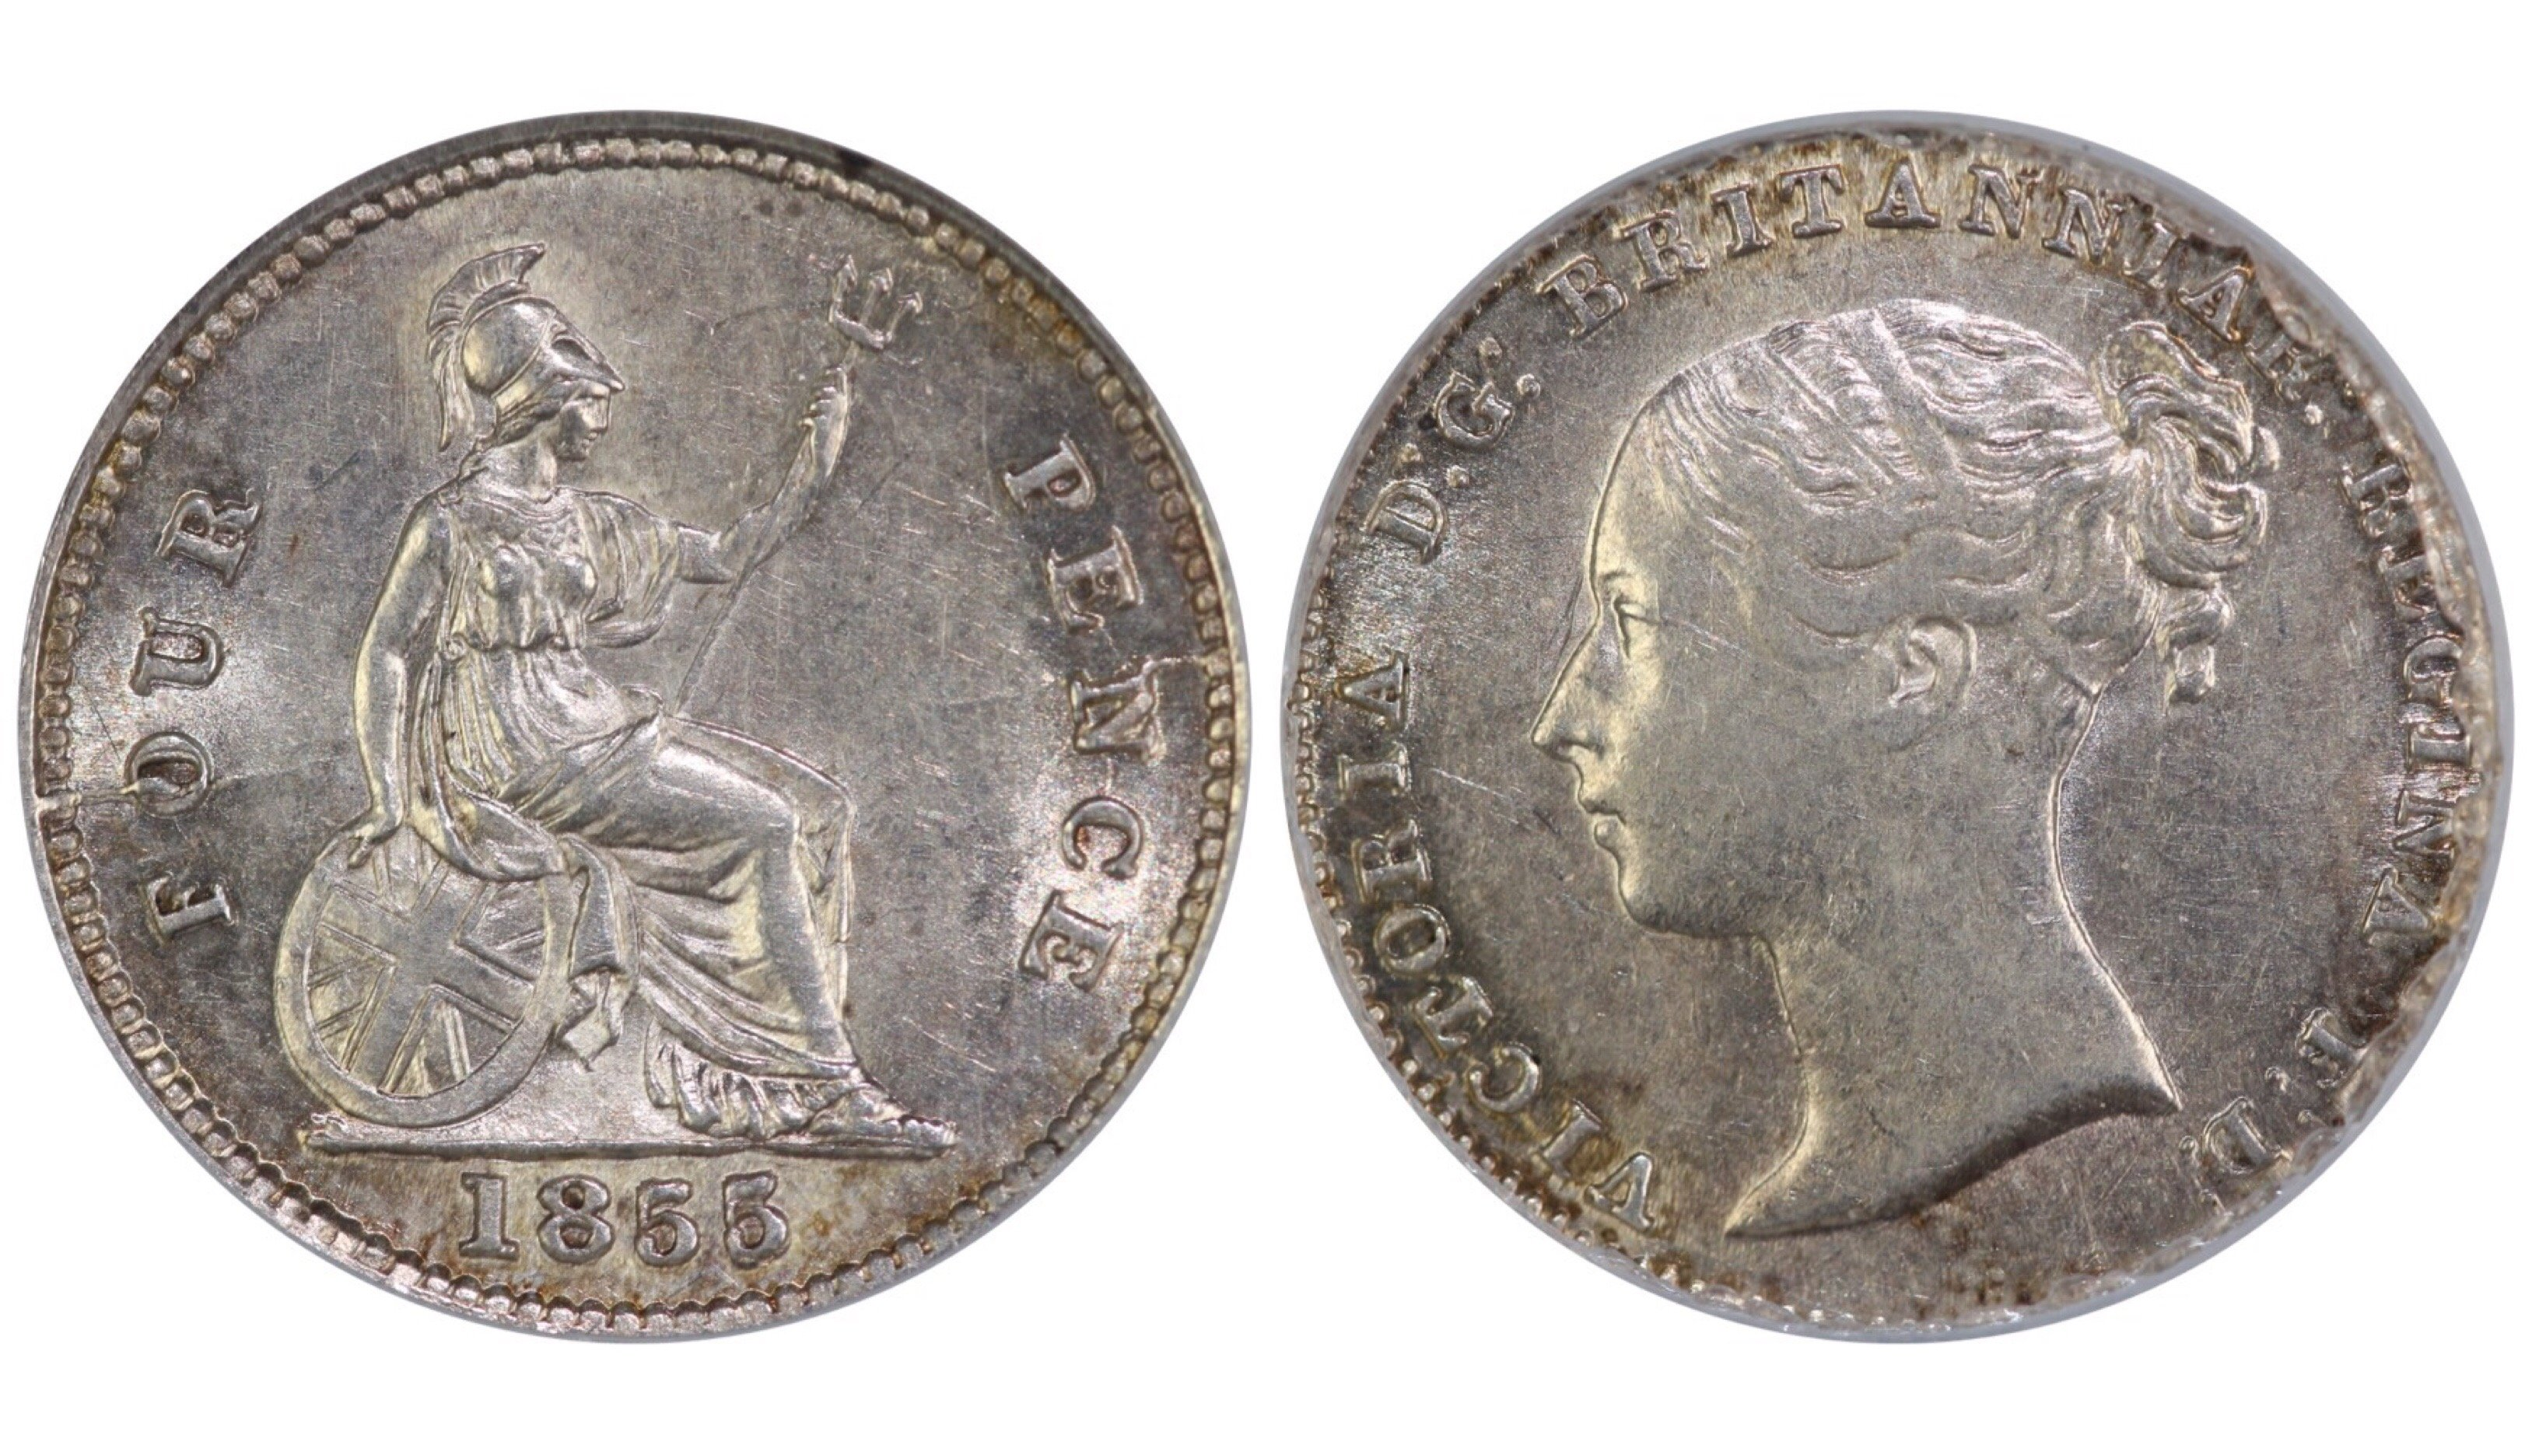 1855 Groat, 5 over lower 5, CGS 65, Victoria, CGS variety 4, UIN 16419